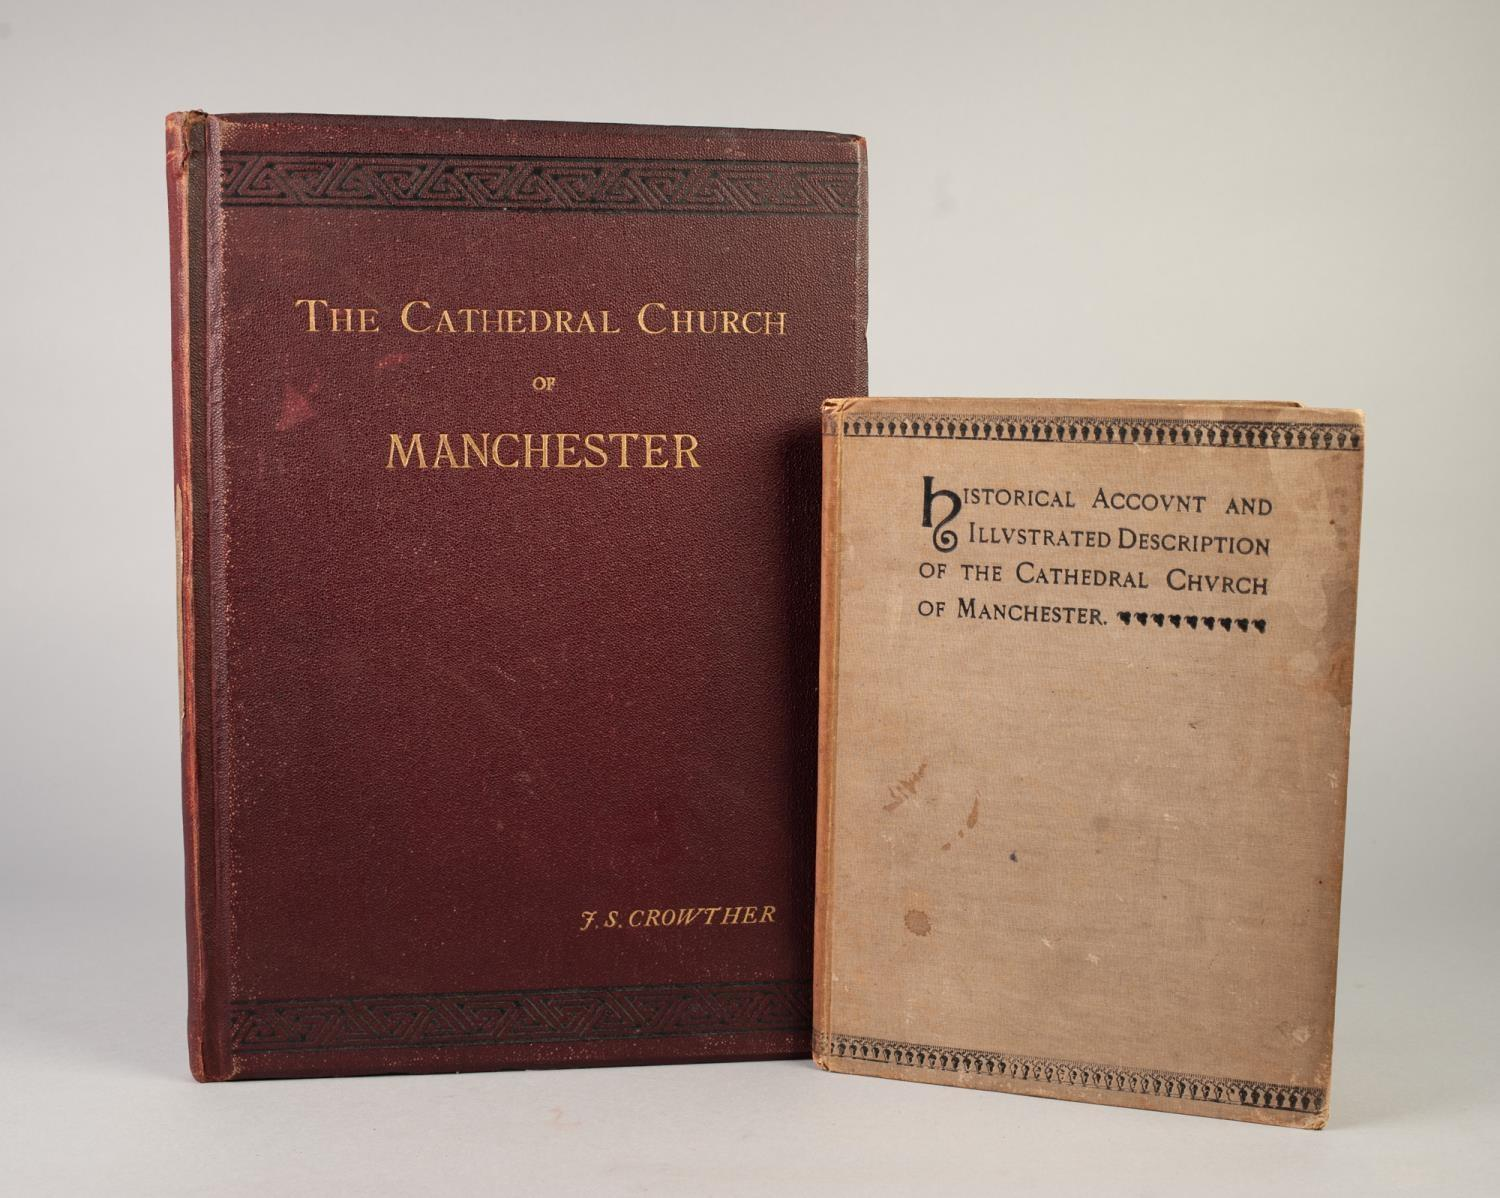 Lot 21 - CROWTHER, AN ARCHITECUTRAL HISTORY OF THE CATHEDRAL CHURCH OF MANCHESTER, edited by F Renaud,